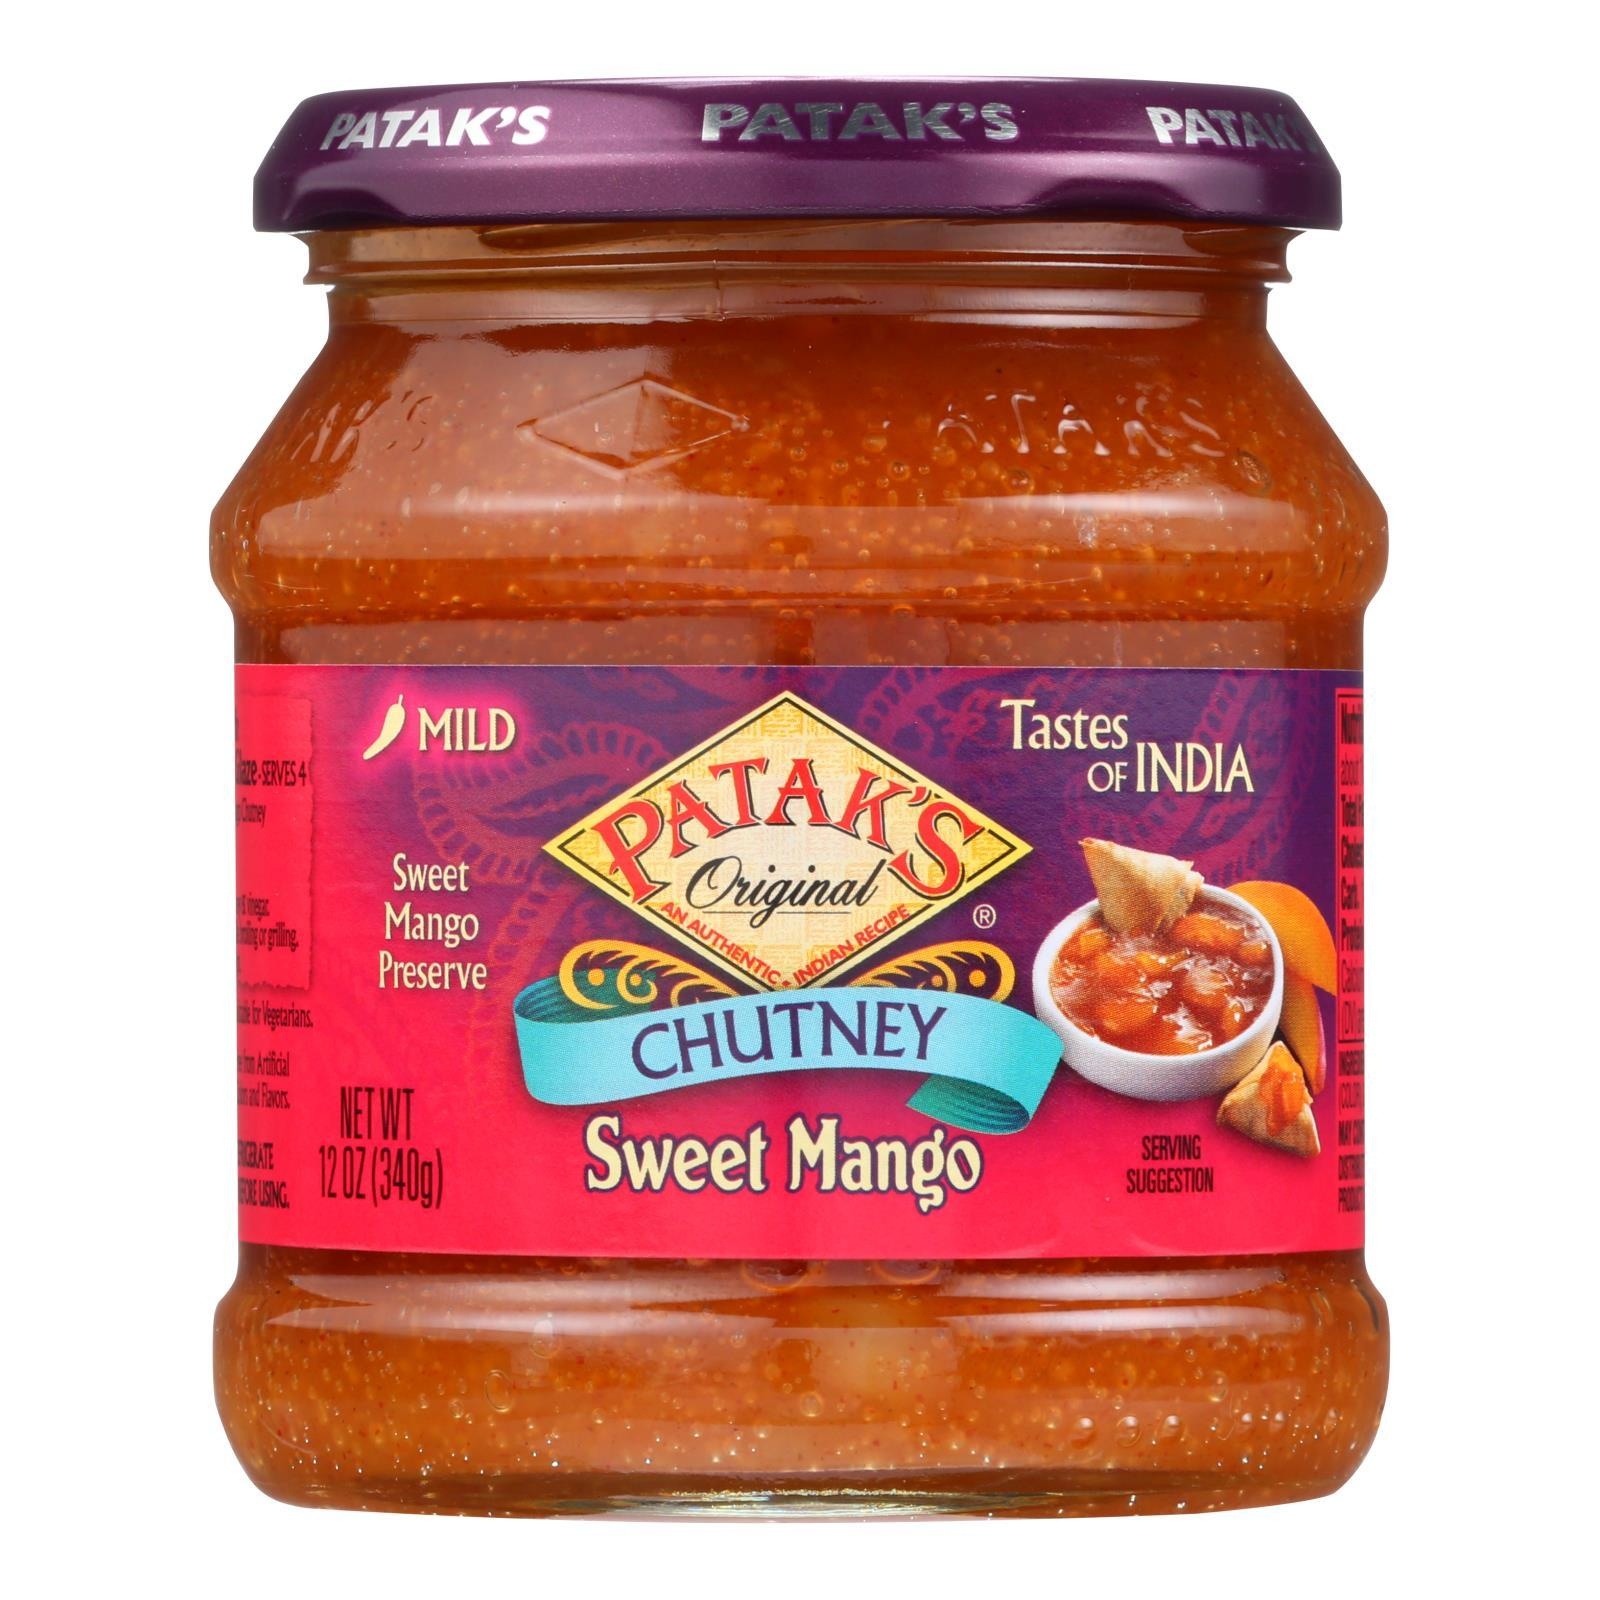 Pataks Chutney - Sweet Mango - Mild - 12 Oz - Case Of 6 - BeeGreen